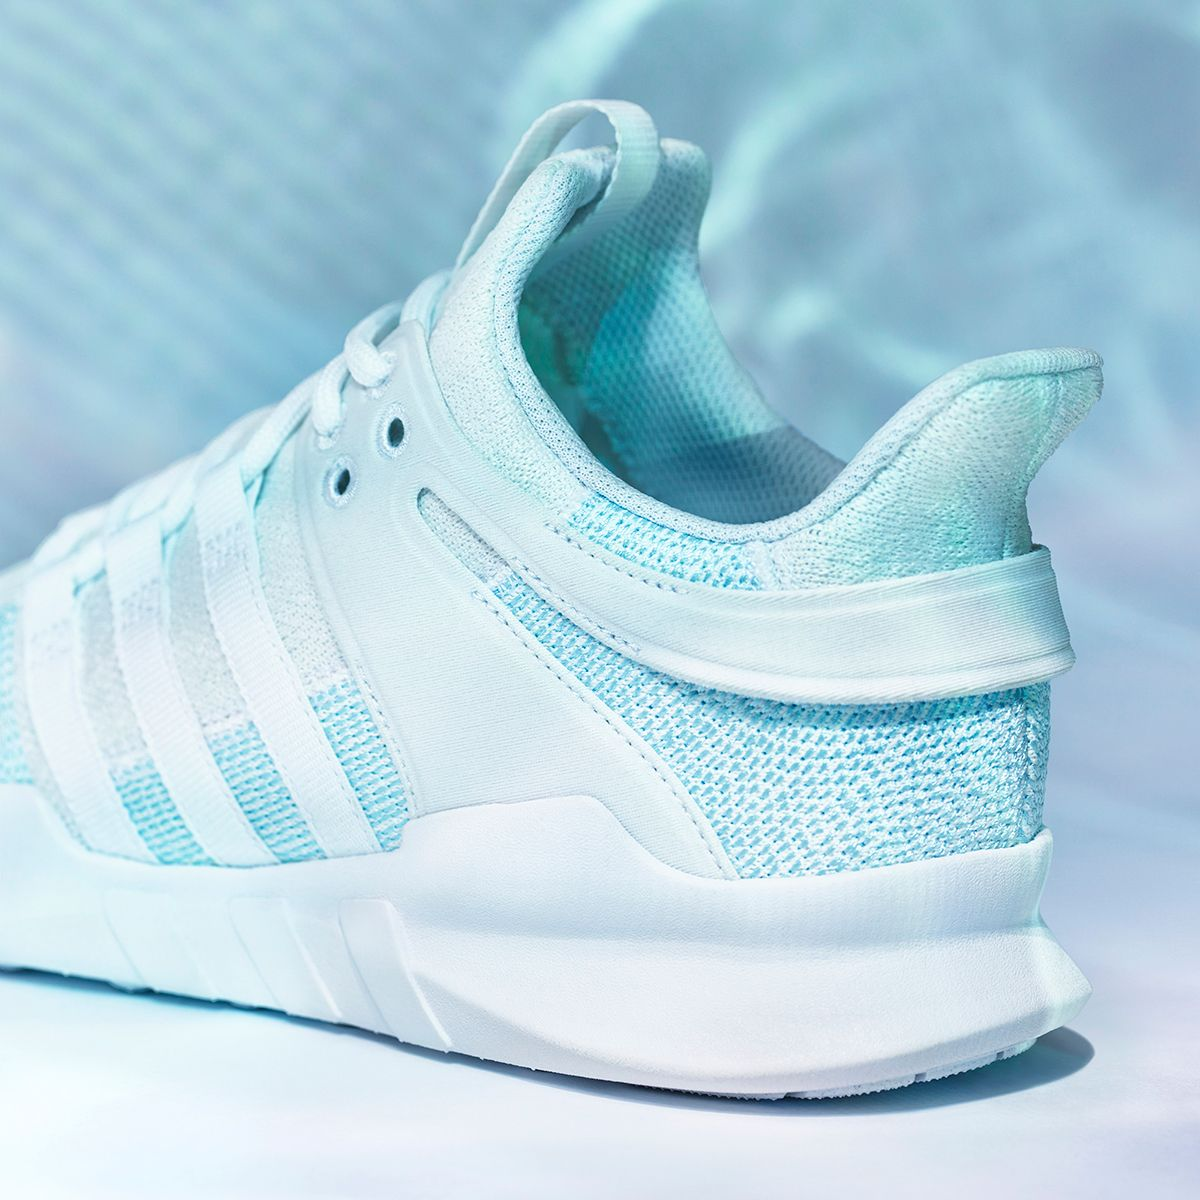 Parley X Adidas Eqt Support Adv Ck Pack7